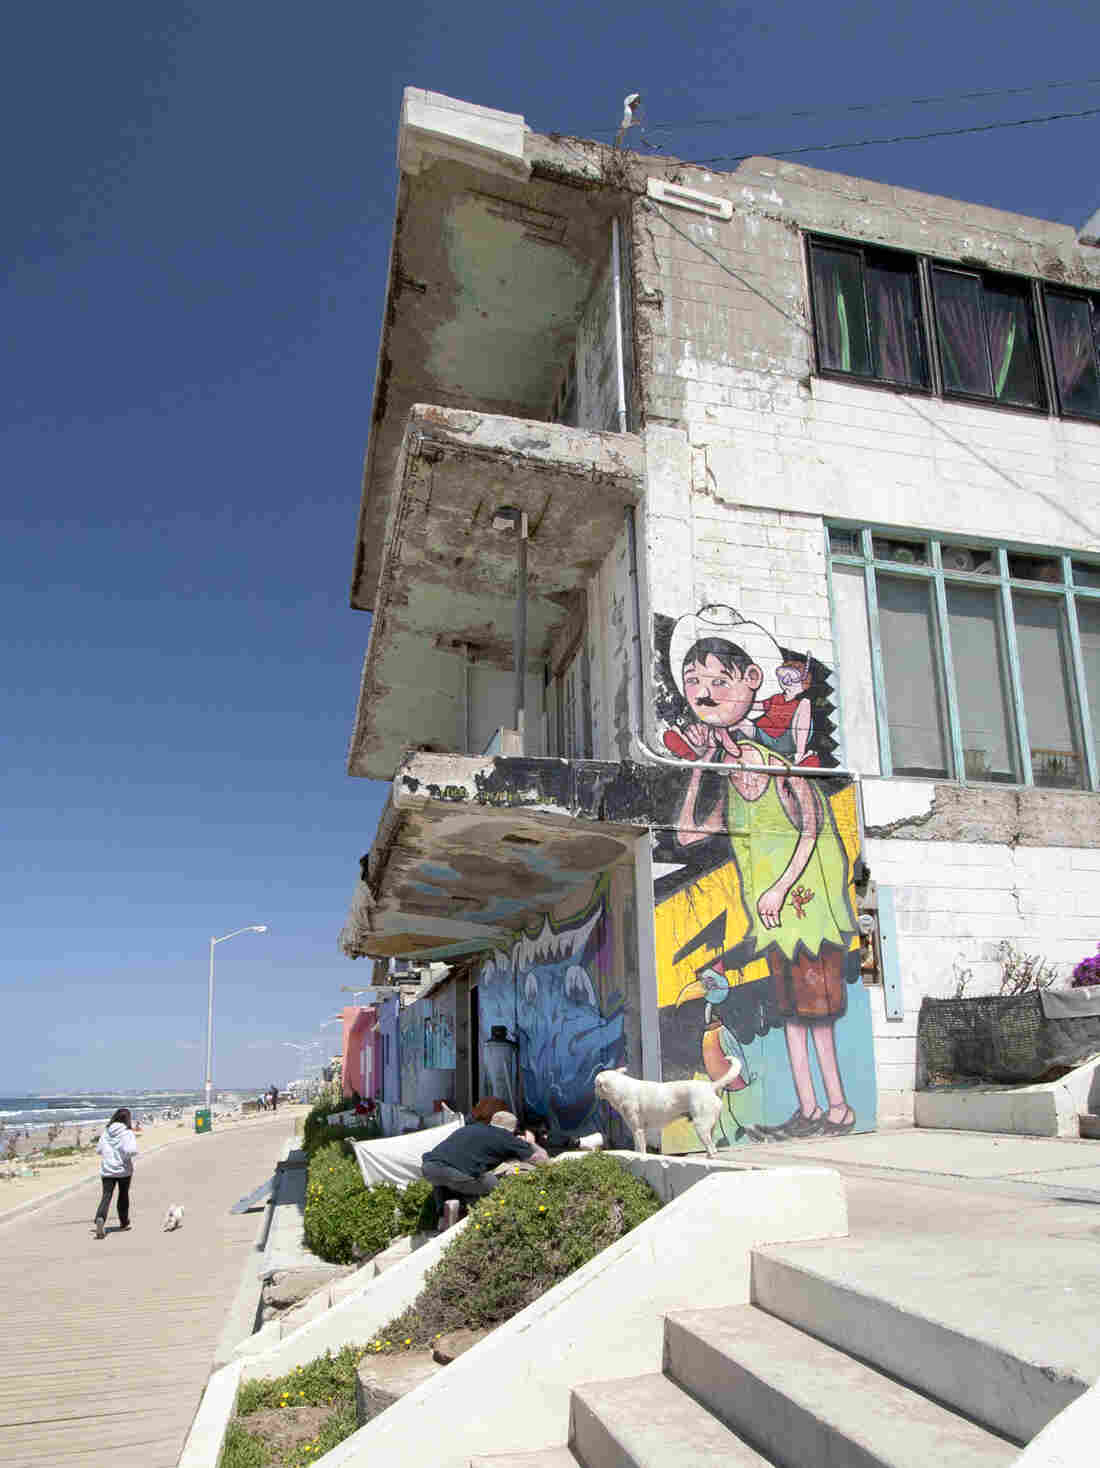 Alfonso Delgadillo's (aka El Norteno) piece in Playas de Tijuana. El Norteno likes to paint scenes of everyday life, like a father spending the day at the beach with his son.